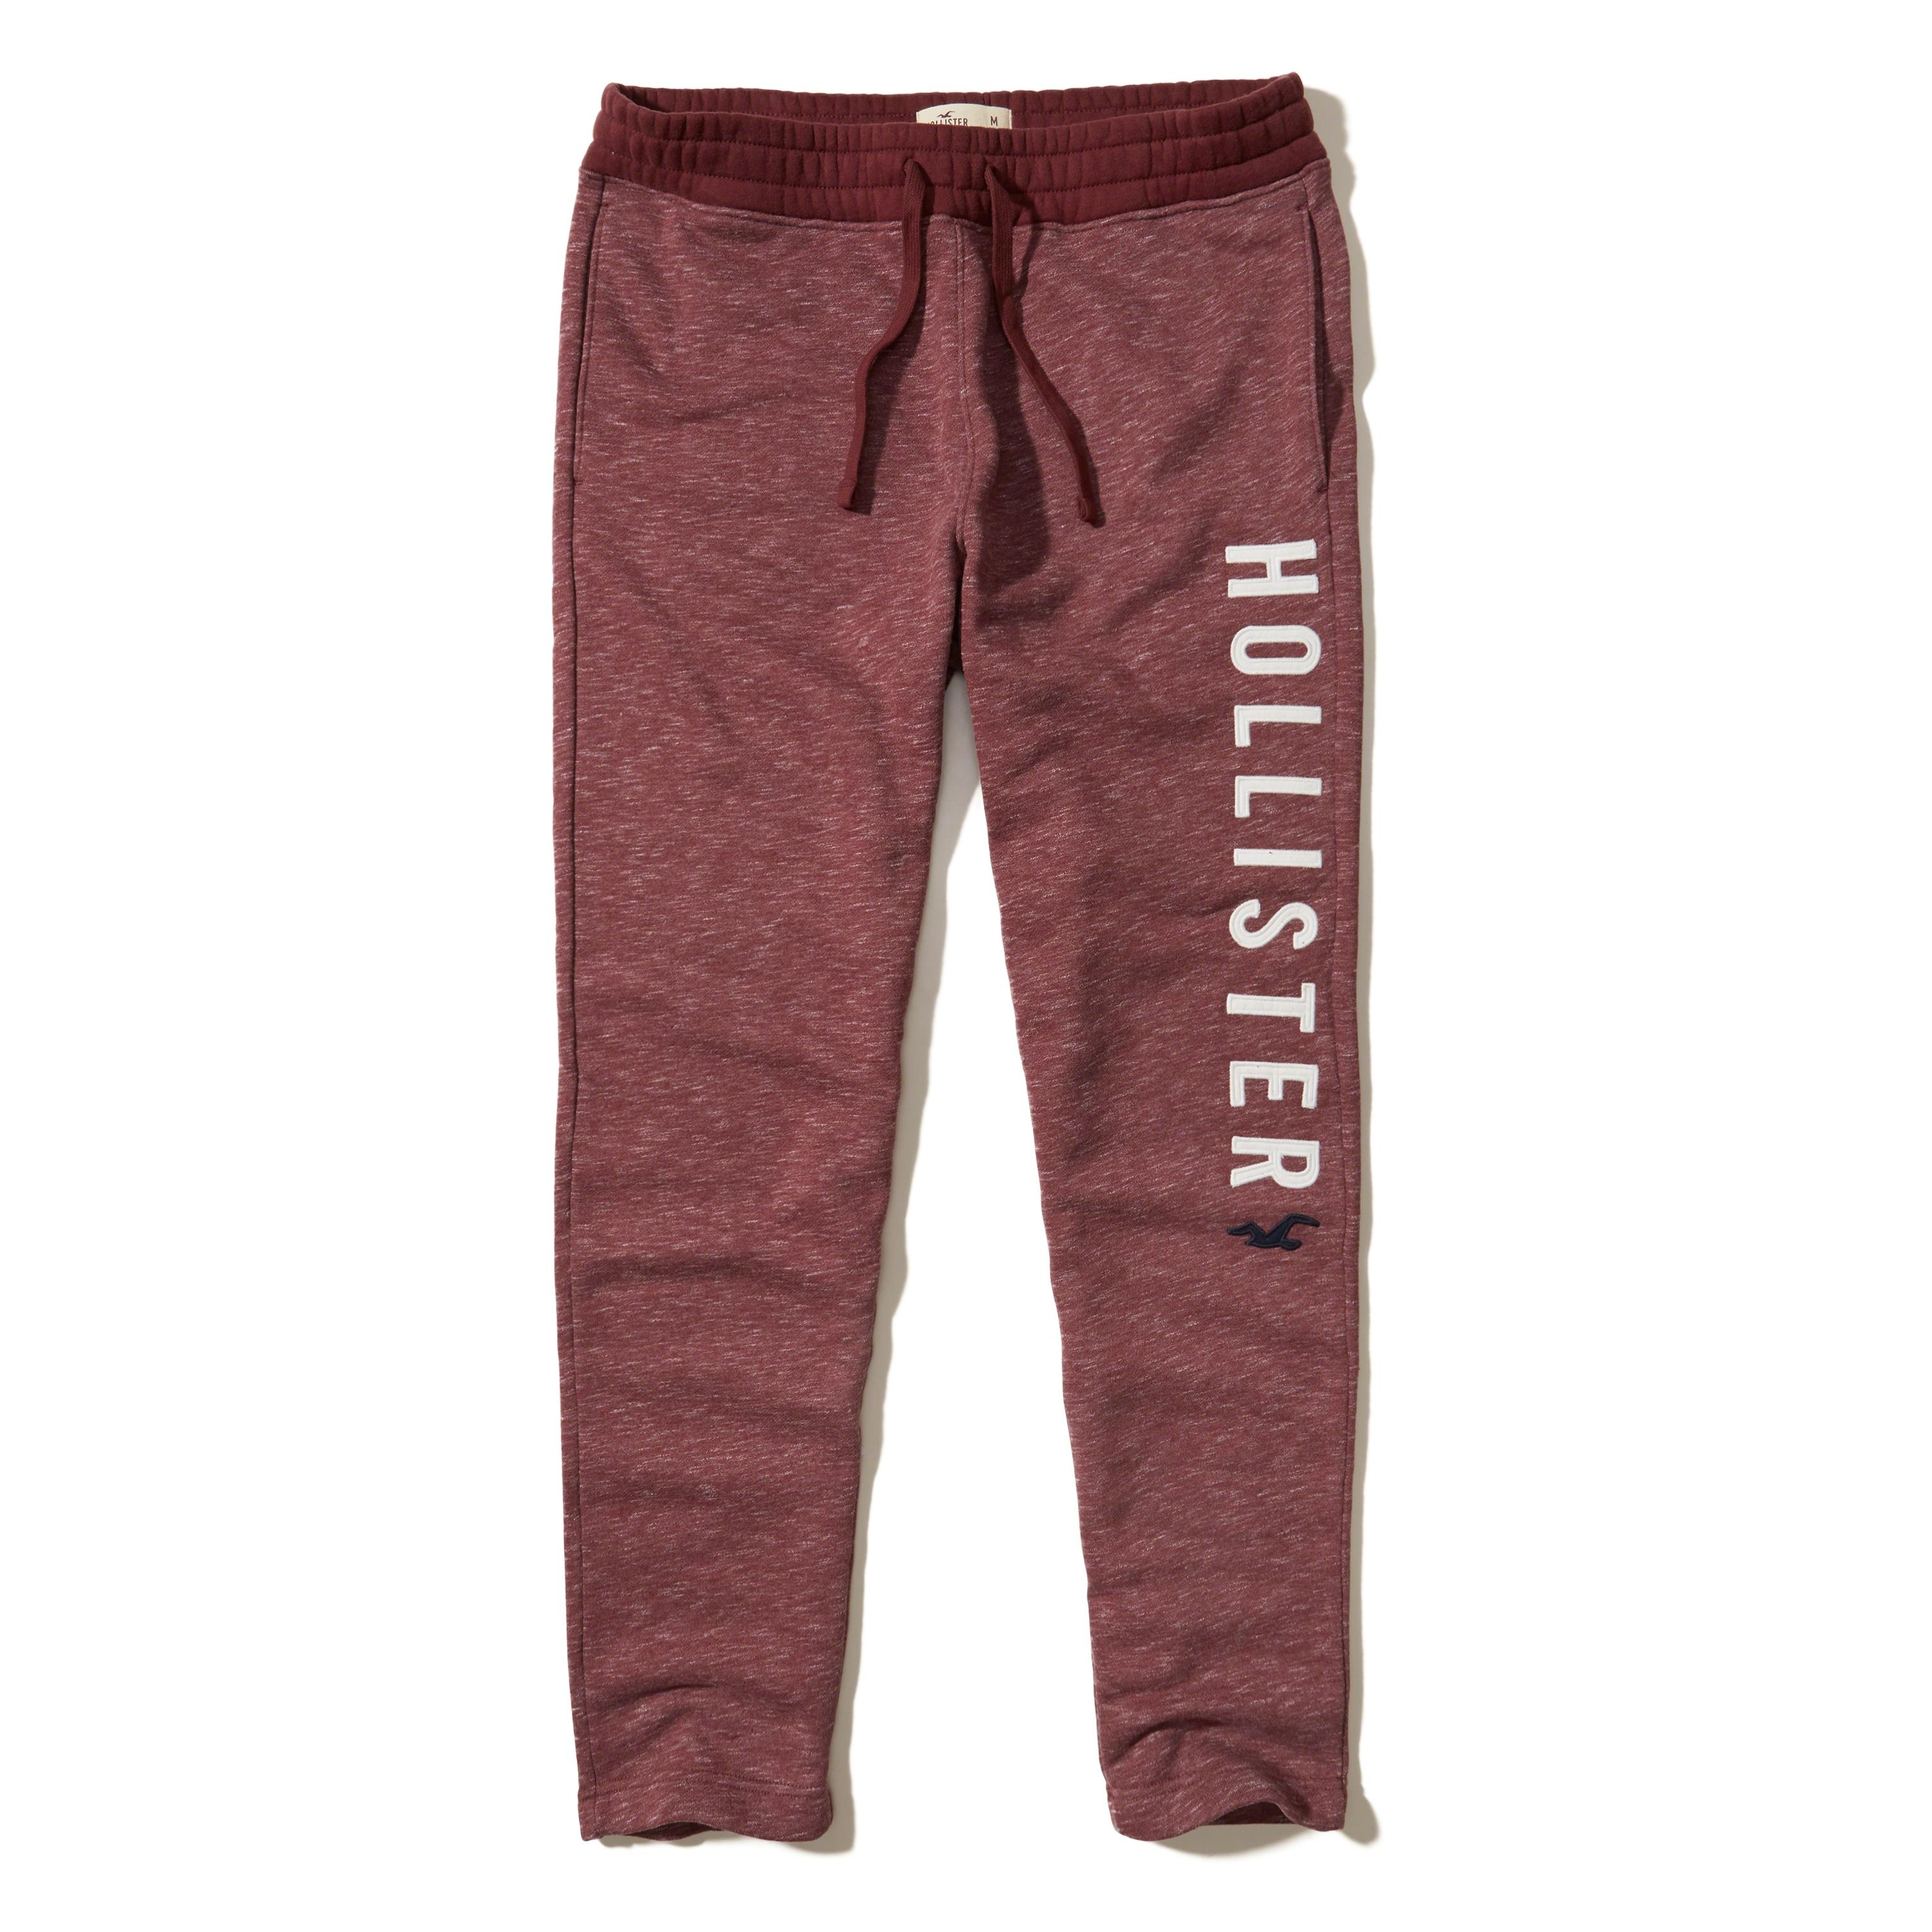 Lyst - Hollister Graphic Straight-leg Sweatpants in Red ...